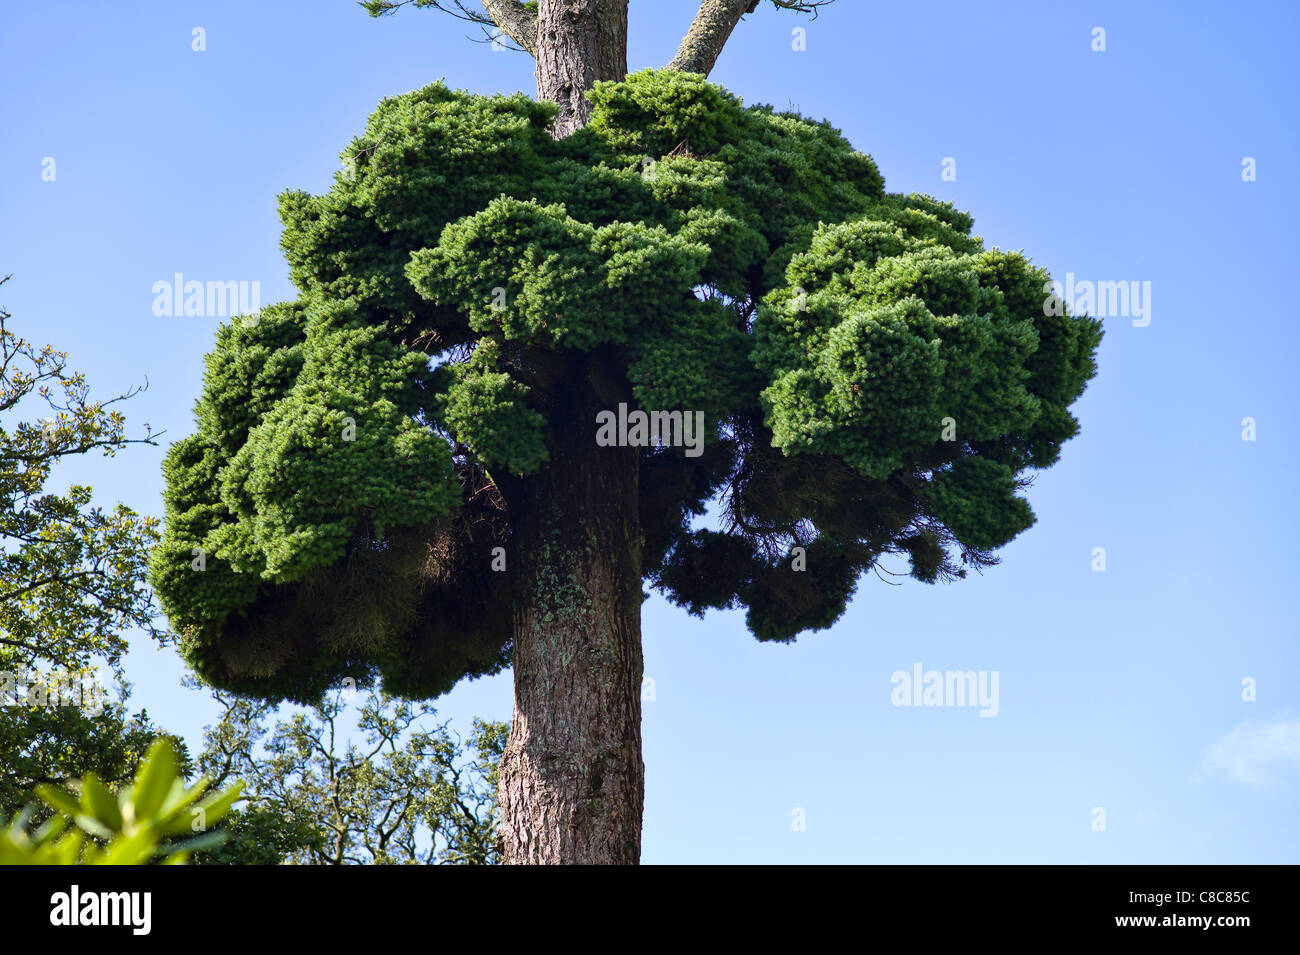 Huge specimen of Witches Broom growing on an old Douglas fir tree - Stock Image